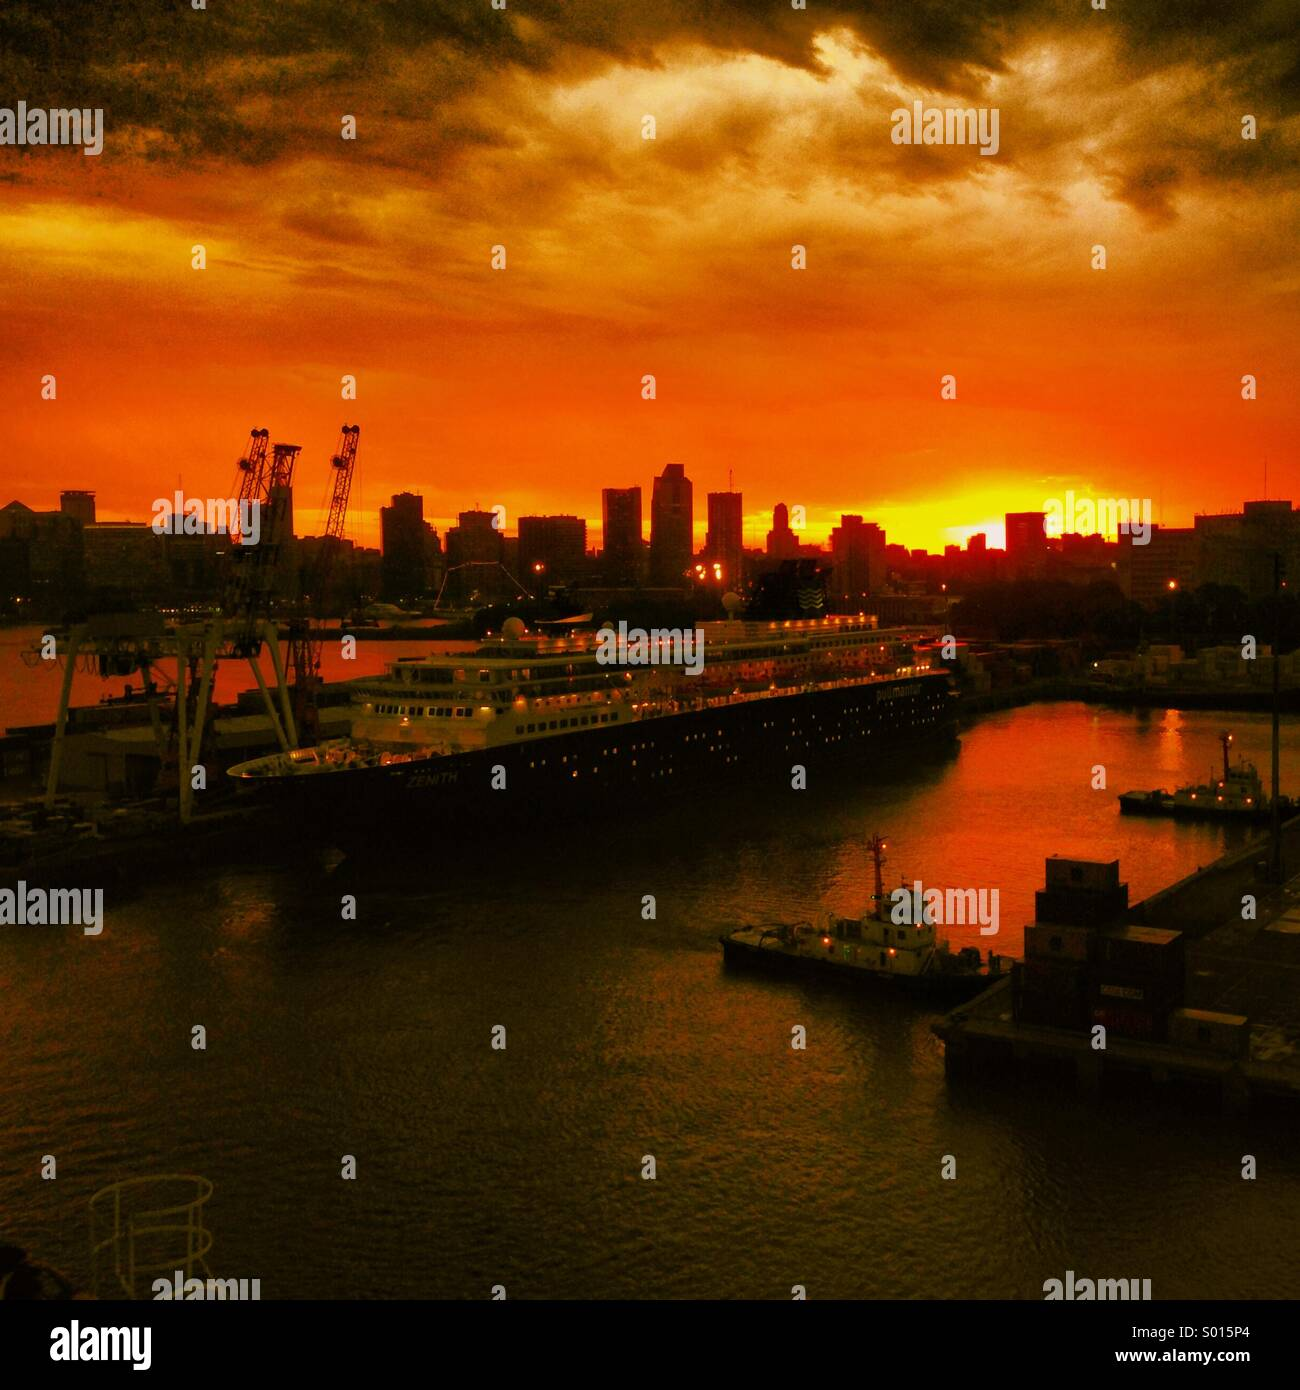 Sunset at the Port of Buenos Aires - Stock Image